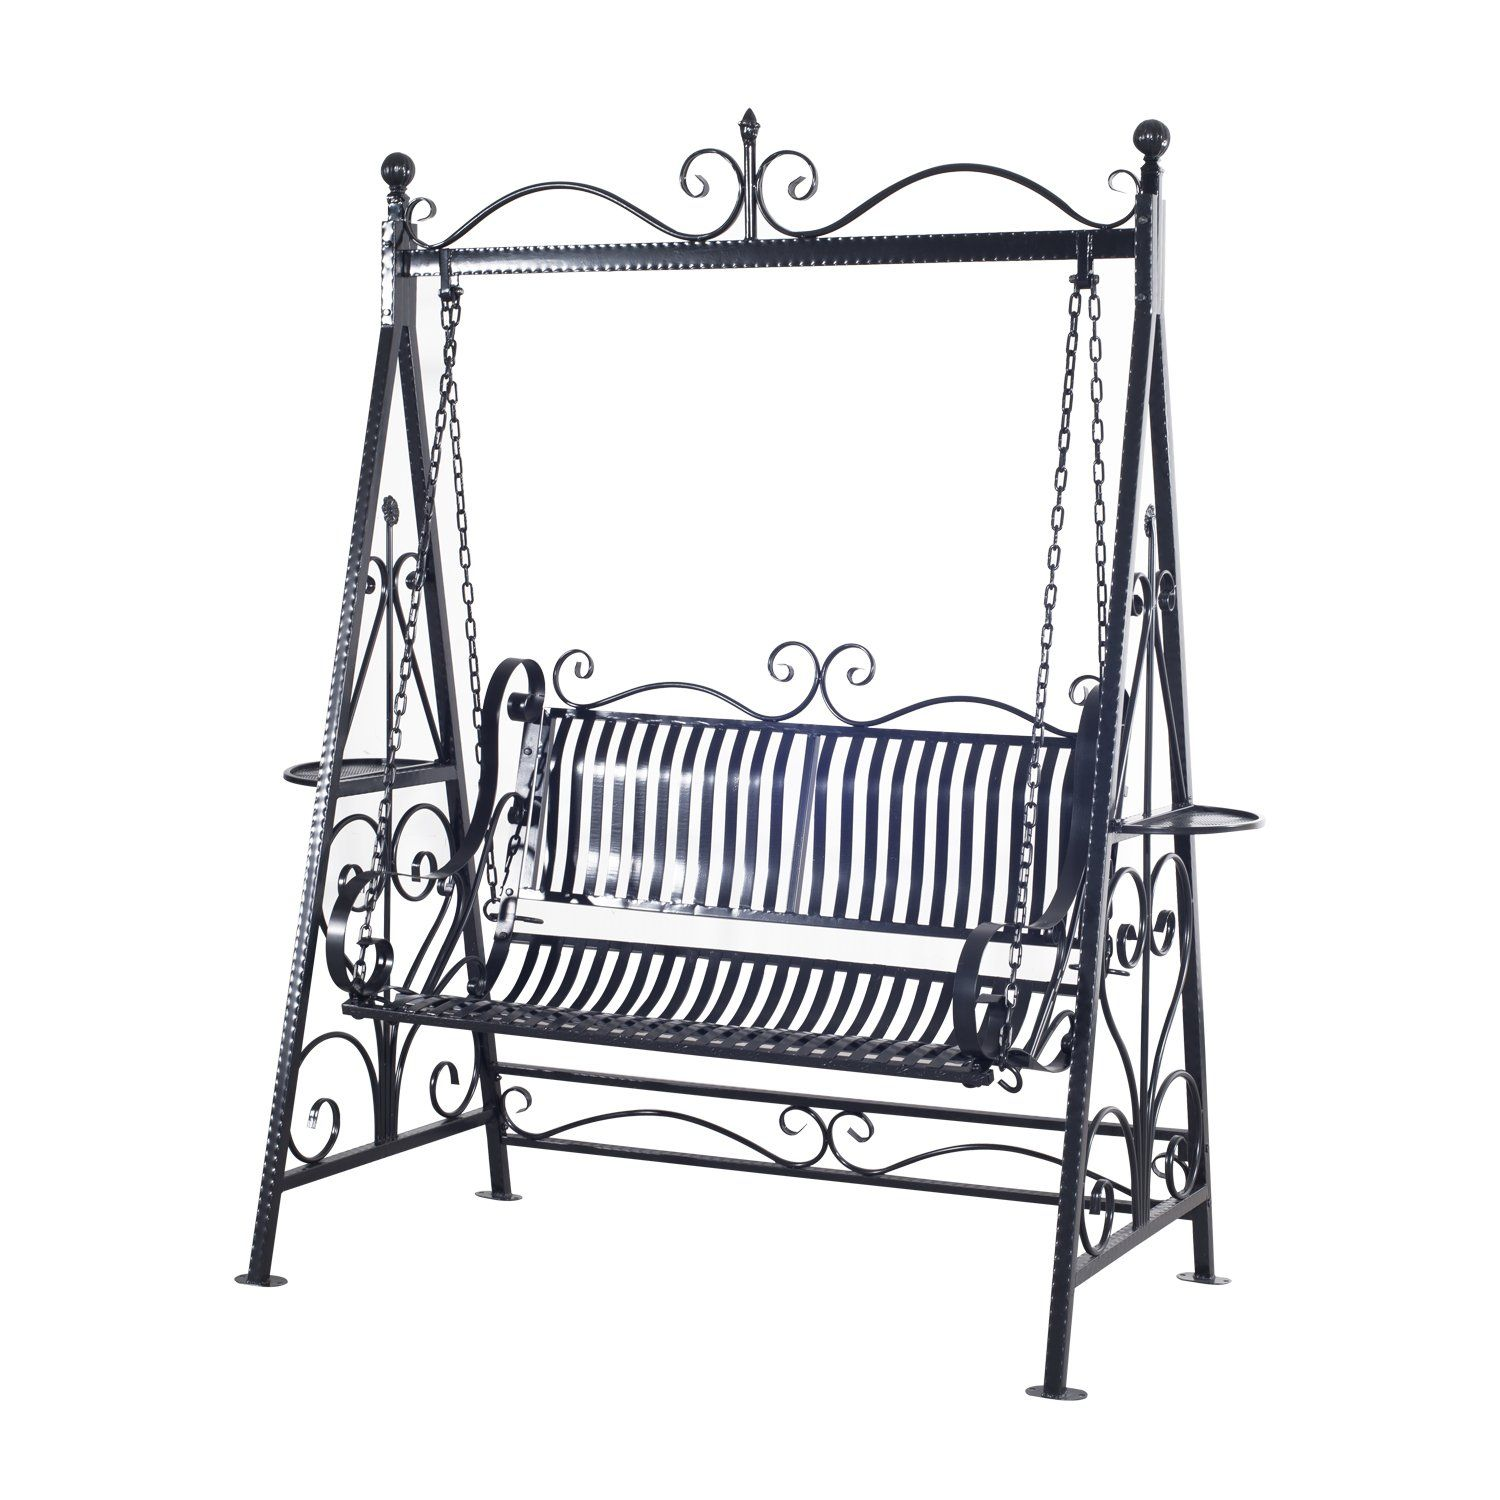 Hanging Chair Metal Two Person Recliner Outsunny Garden Swing Outdoor Patio Hammock